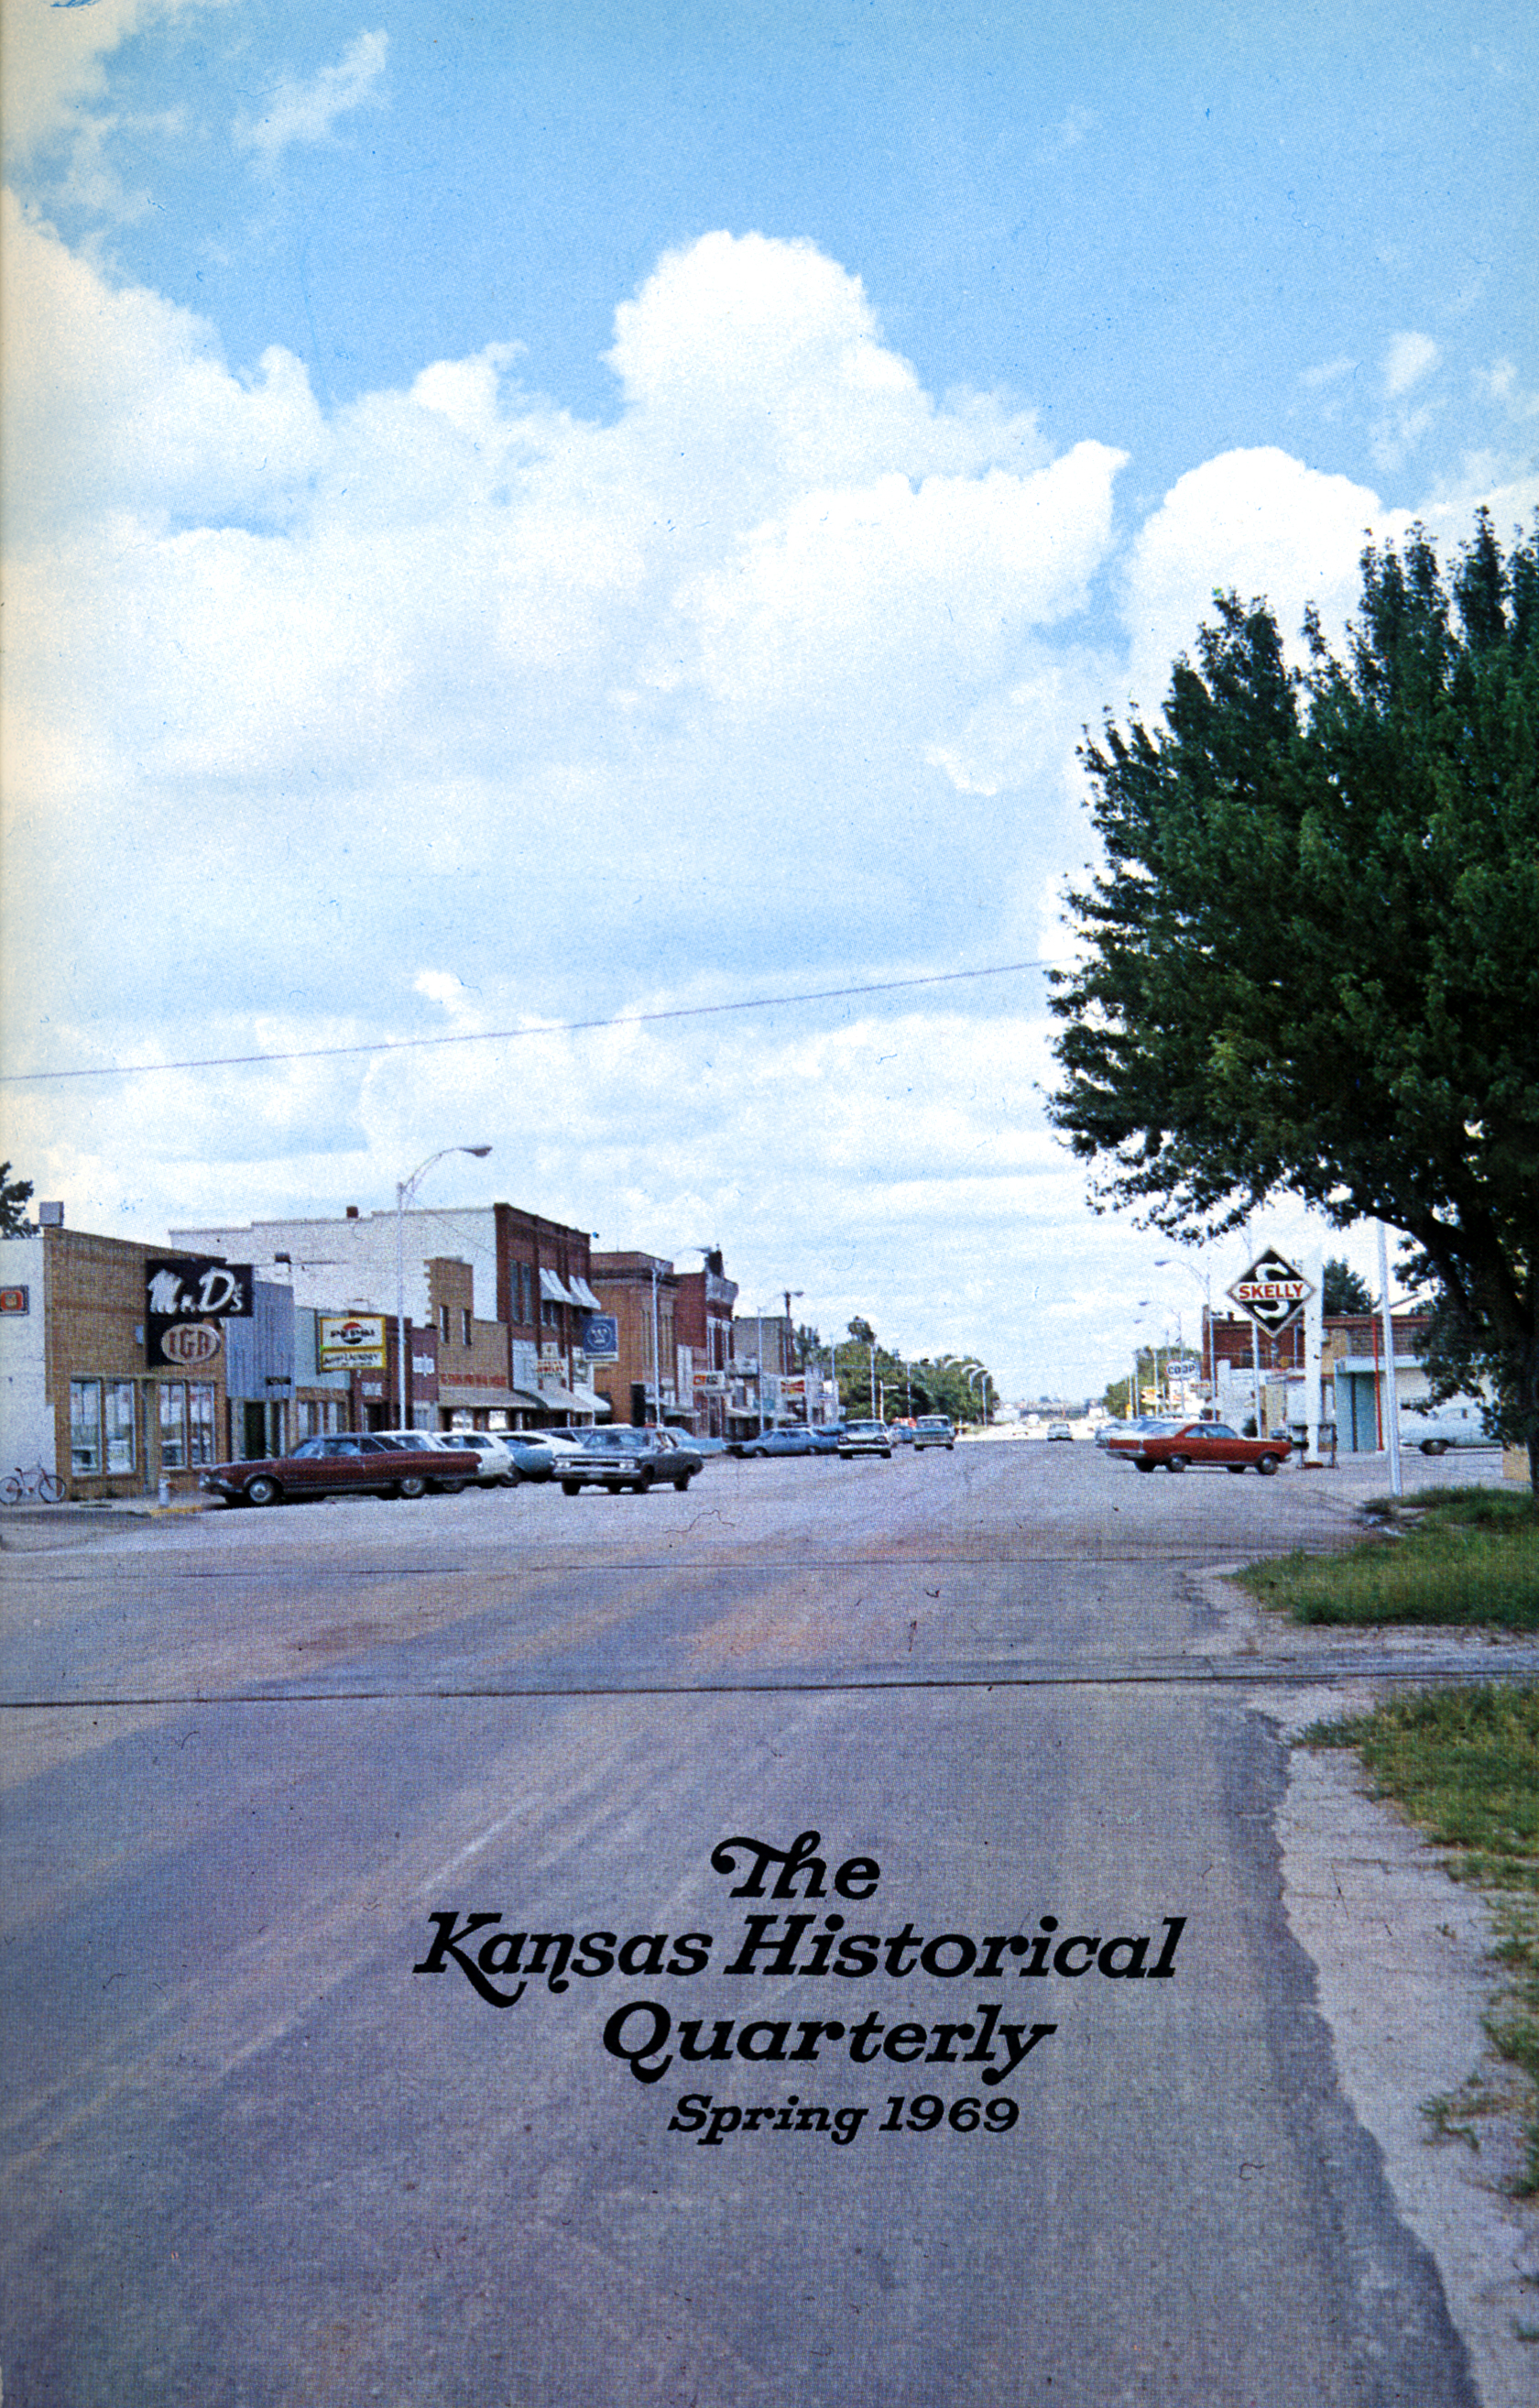 Kansas Historical Quarterly, Spring 1969